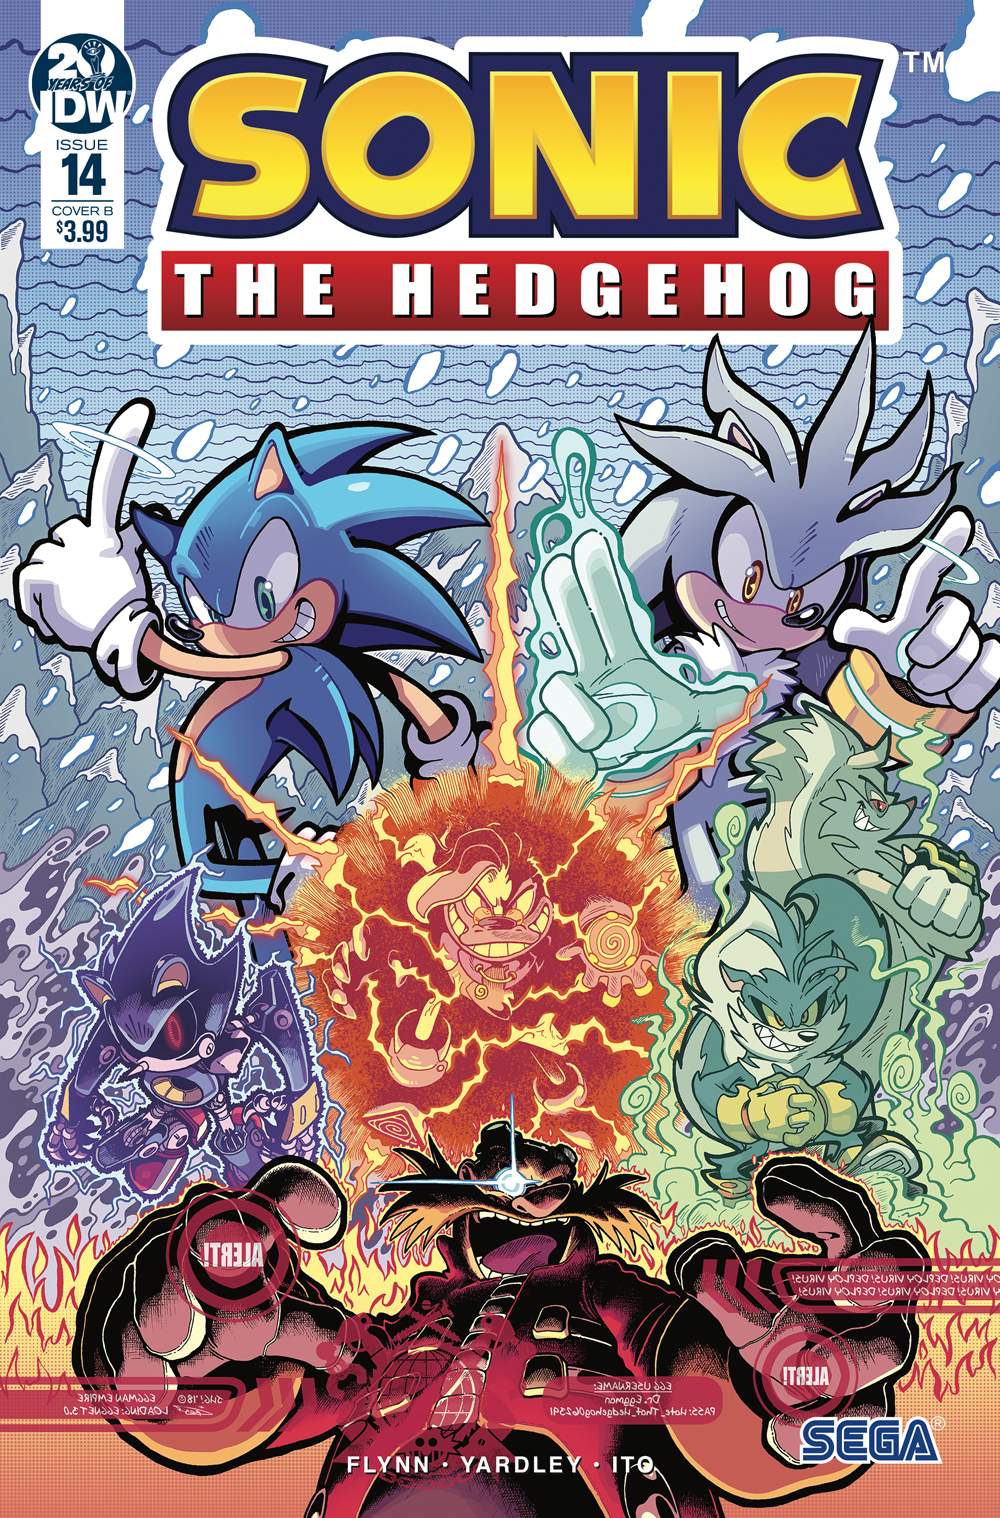 SONIC THE HEDGEHOG #14 CVR B GRAY